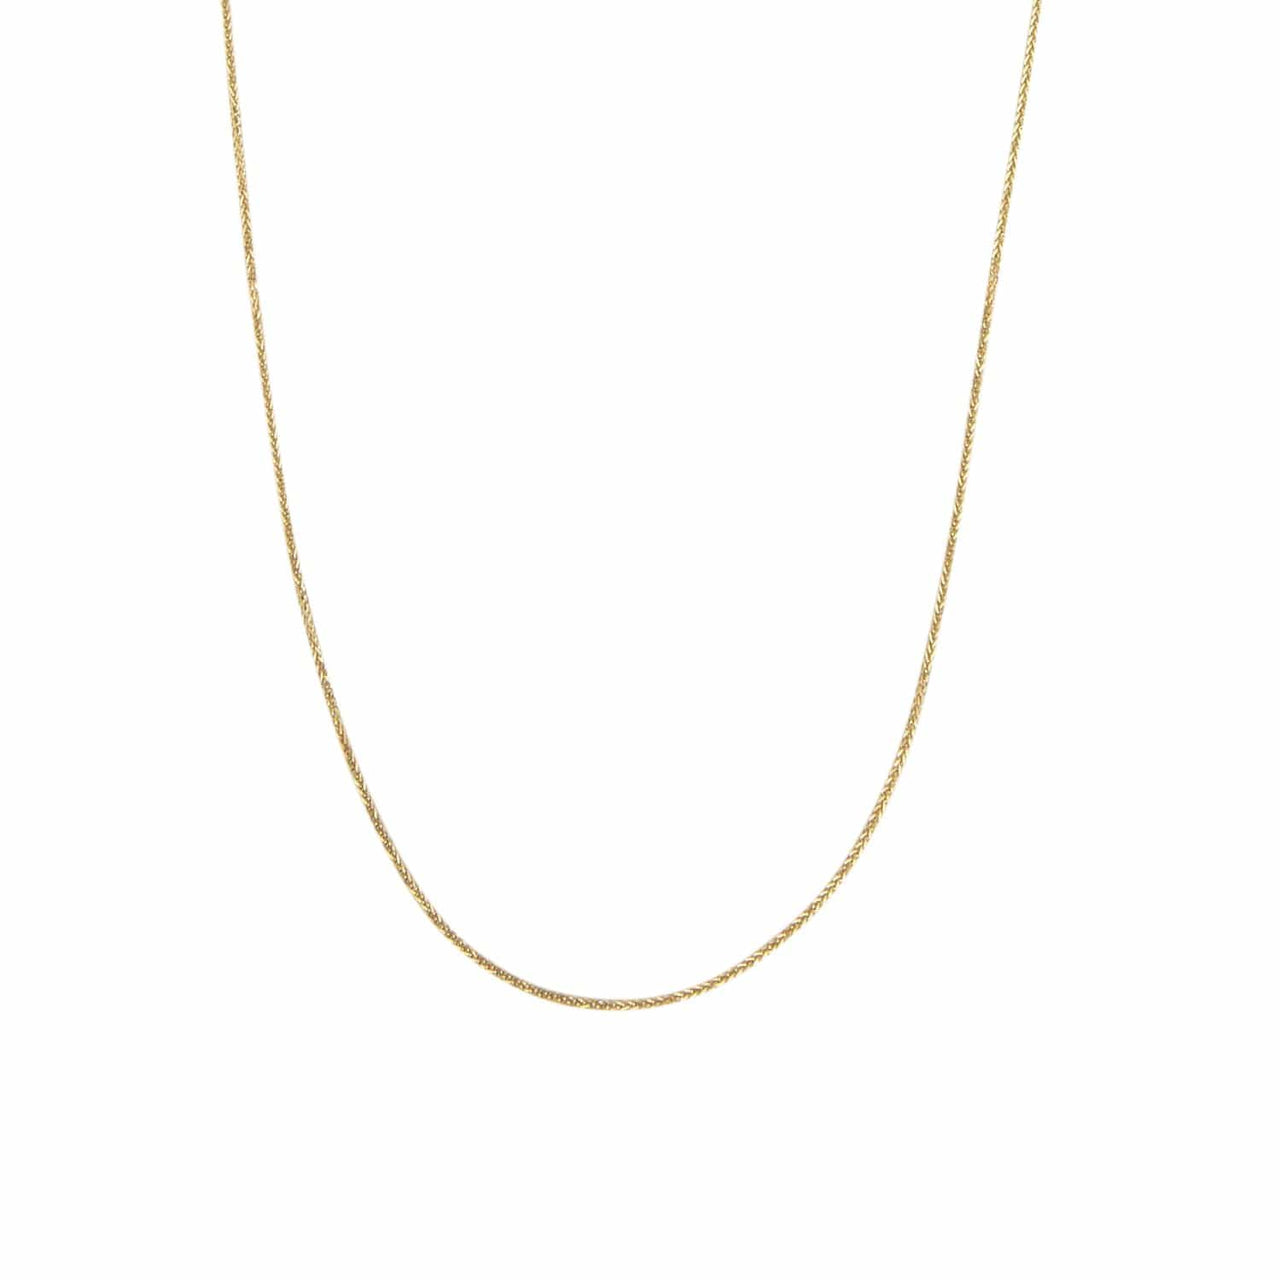 Haati Chai Necklaces Diamond Cut Chain